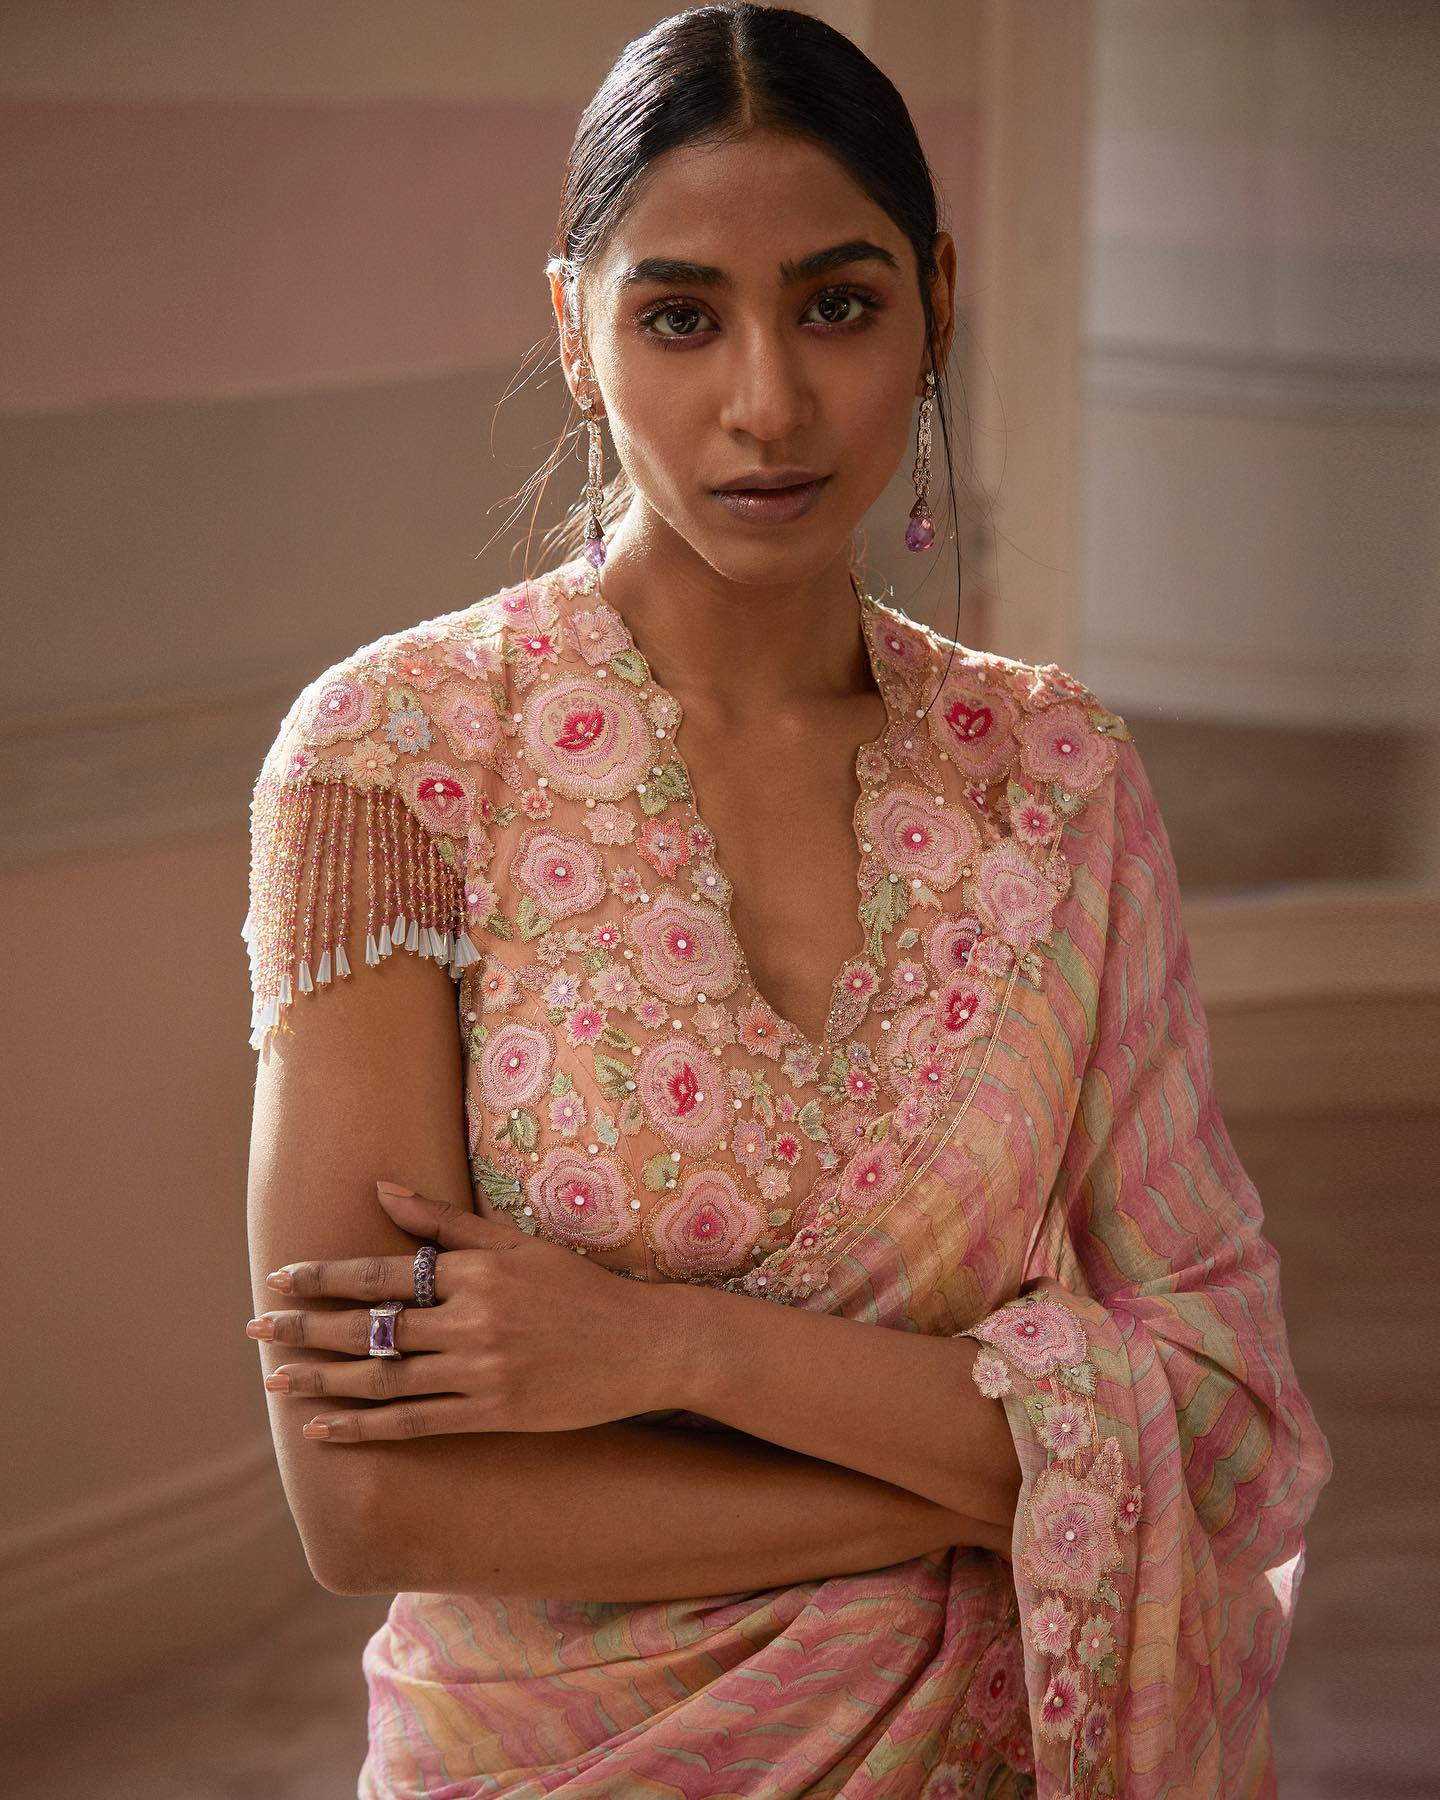 Pink Sunsets . Priti wears hand-painted soft pink georgette saree highlighted with zari and sequins. It comes with a detachable drape. The tulle blouse is enhanced with bloom motifs in resham and badla embroidery and has cap sleeves which are further elevated with fine crystals strings. 2021-06-07